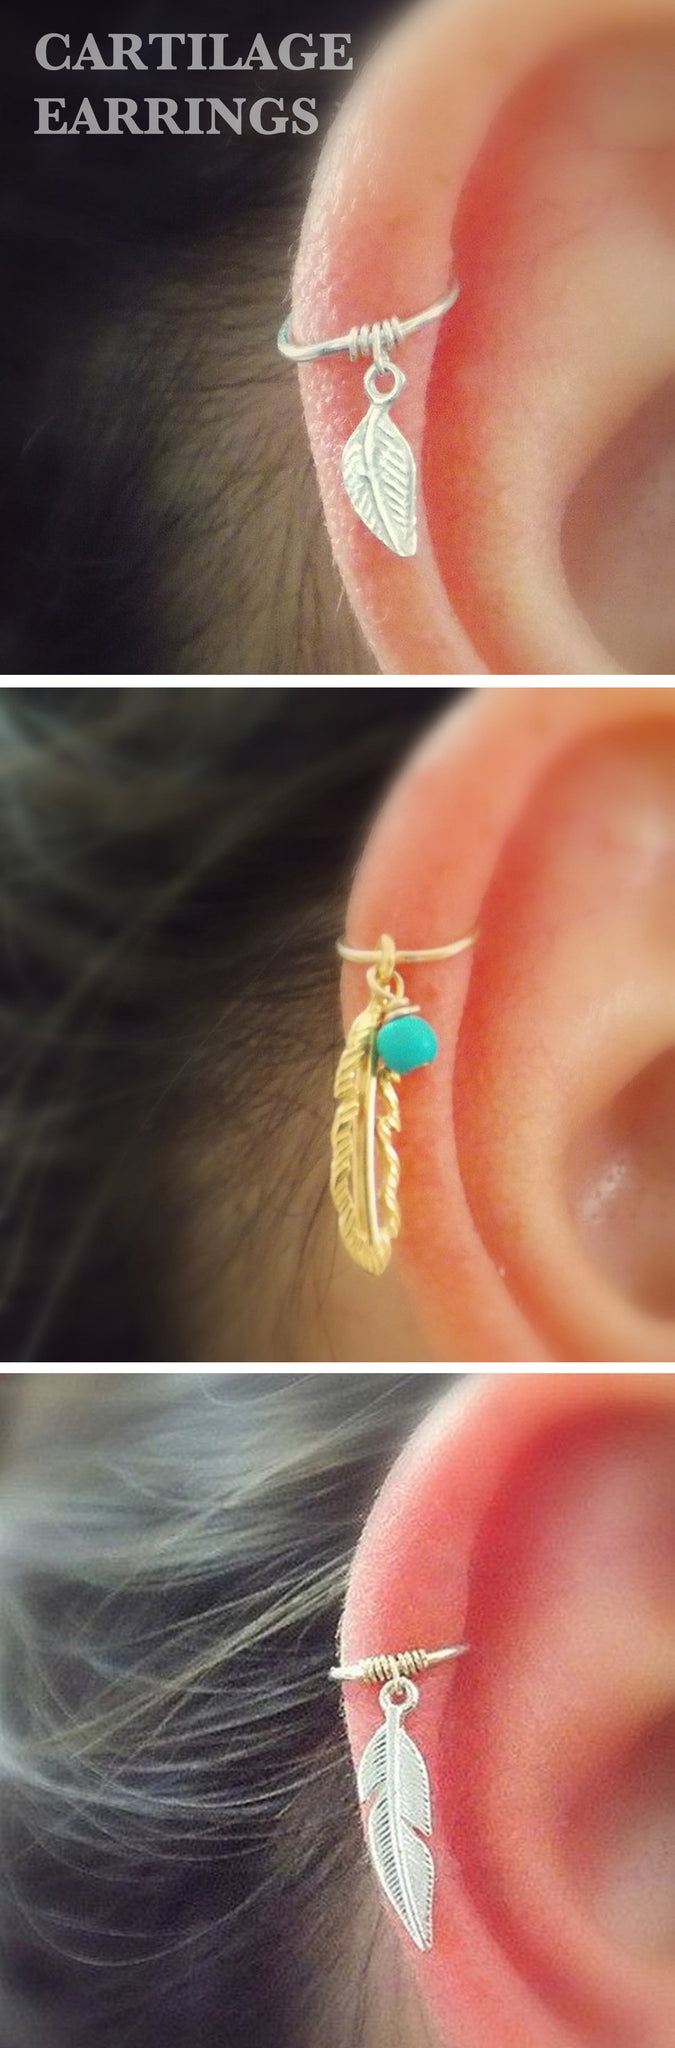 Boho Ear Piercing Ideas Cartilage - Leaf Feather Gold Ring Hoop Earring - www.MyBodiArt.com